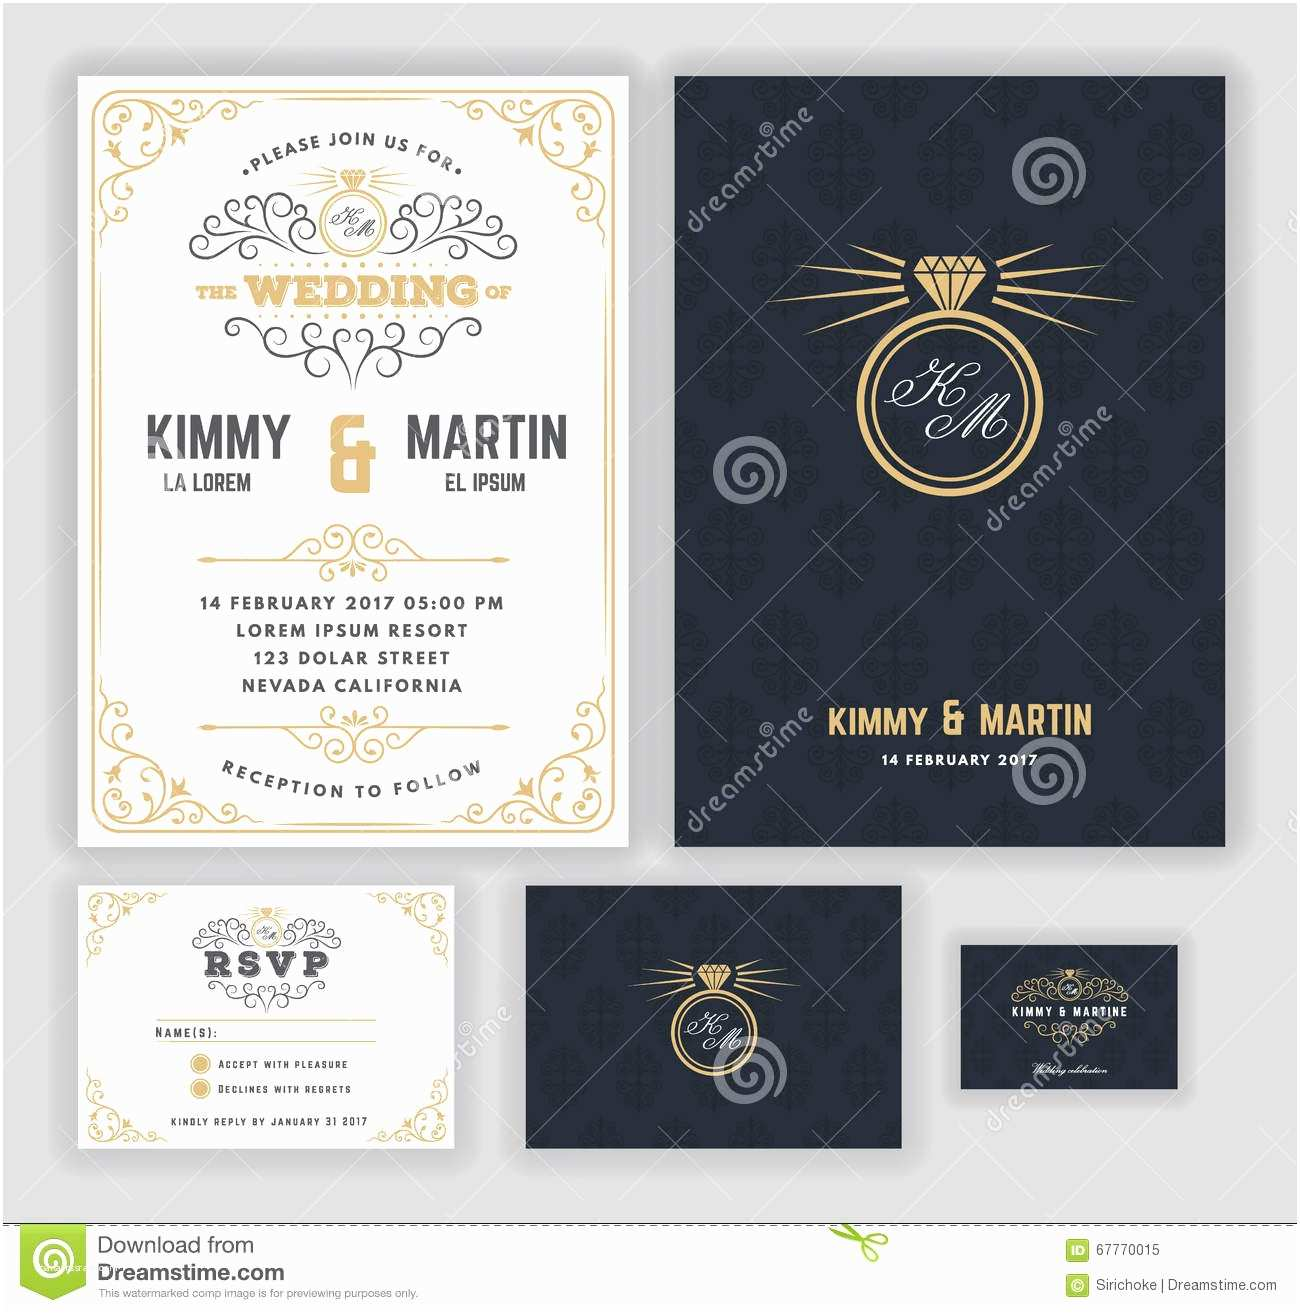 Time Frame for Wedding Invitations Creative Wedding Invitations with Flourish and Twirls